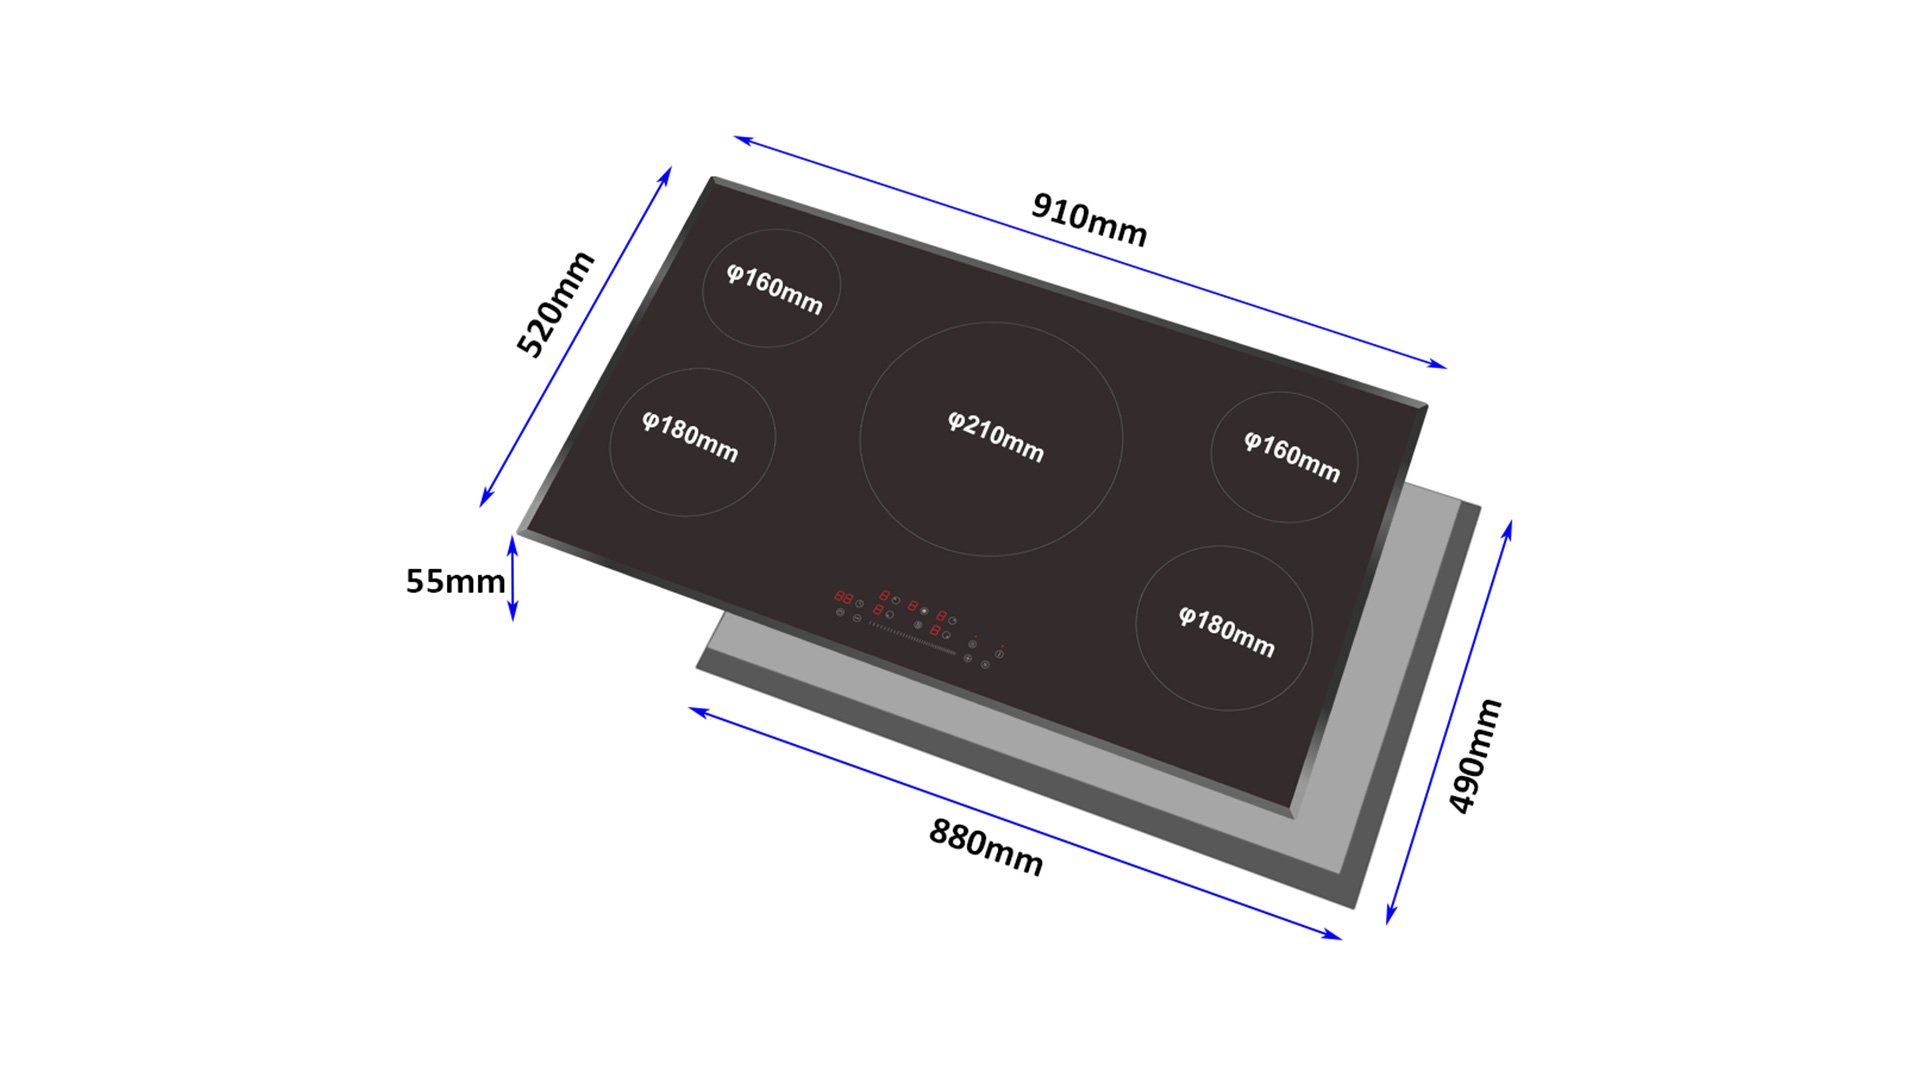 Top Rated Built-in Five Burner Induction Cooktop for Sale 8150-201